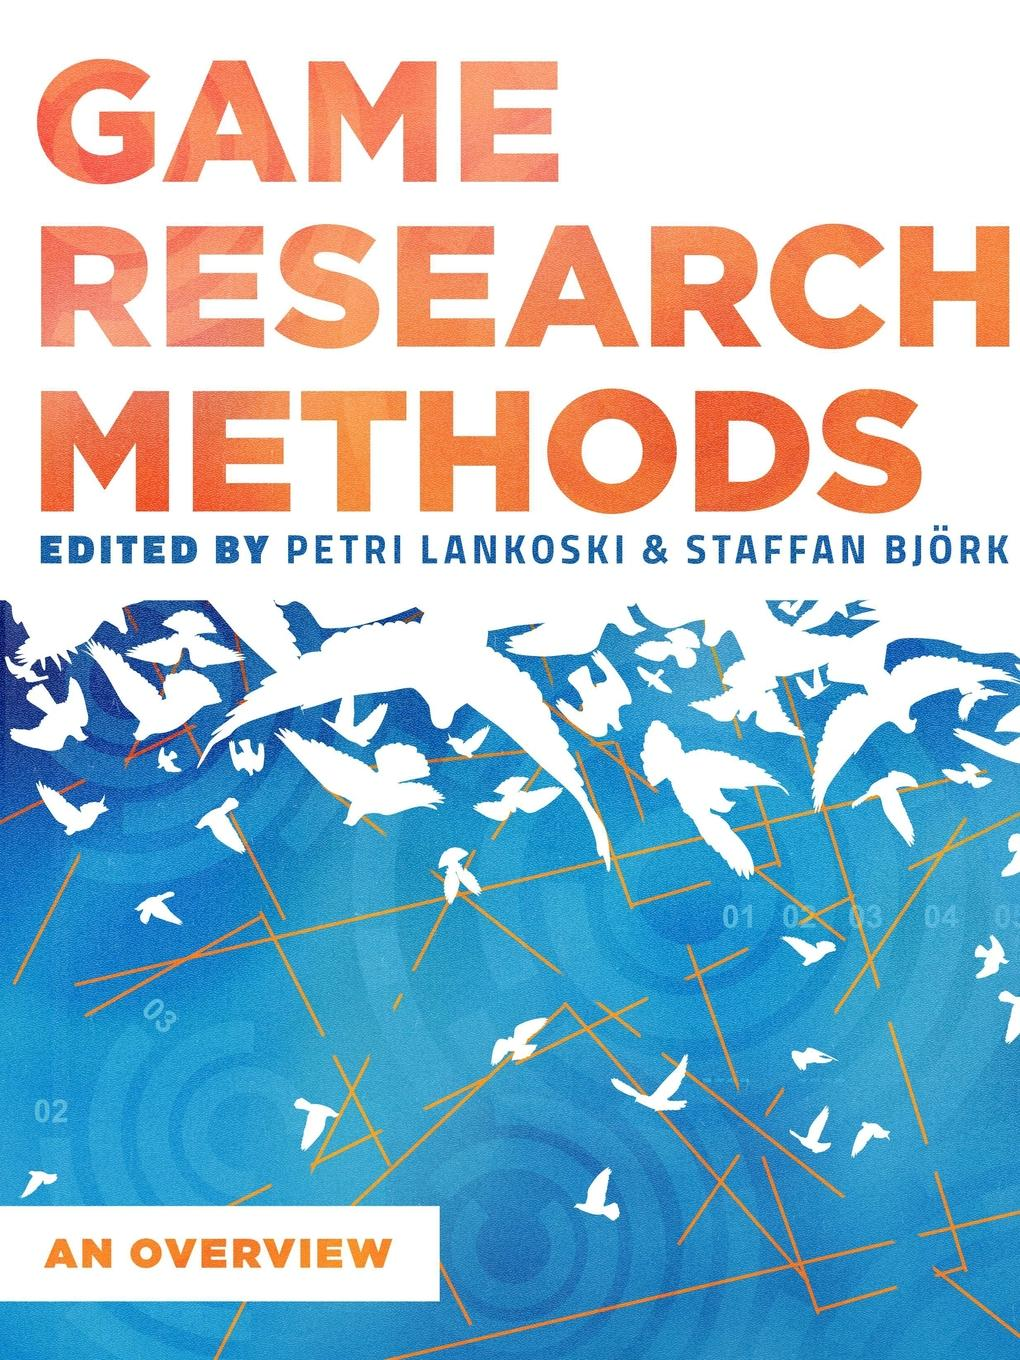 Patri Lankoski, Staffan Björk, et al. Game Research Methods. An Overview 101 games to play